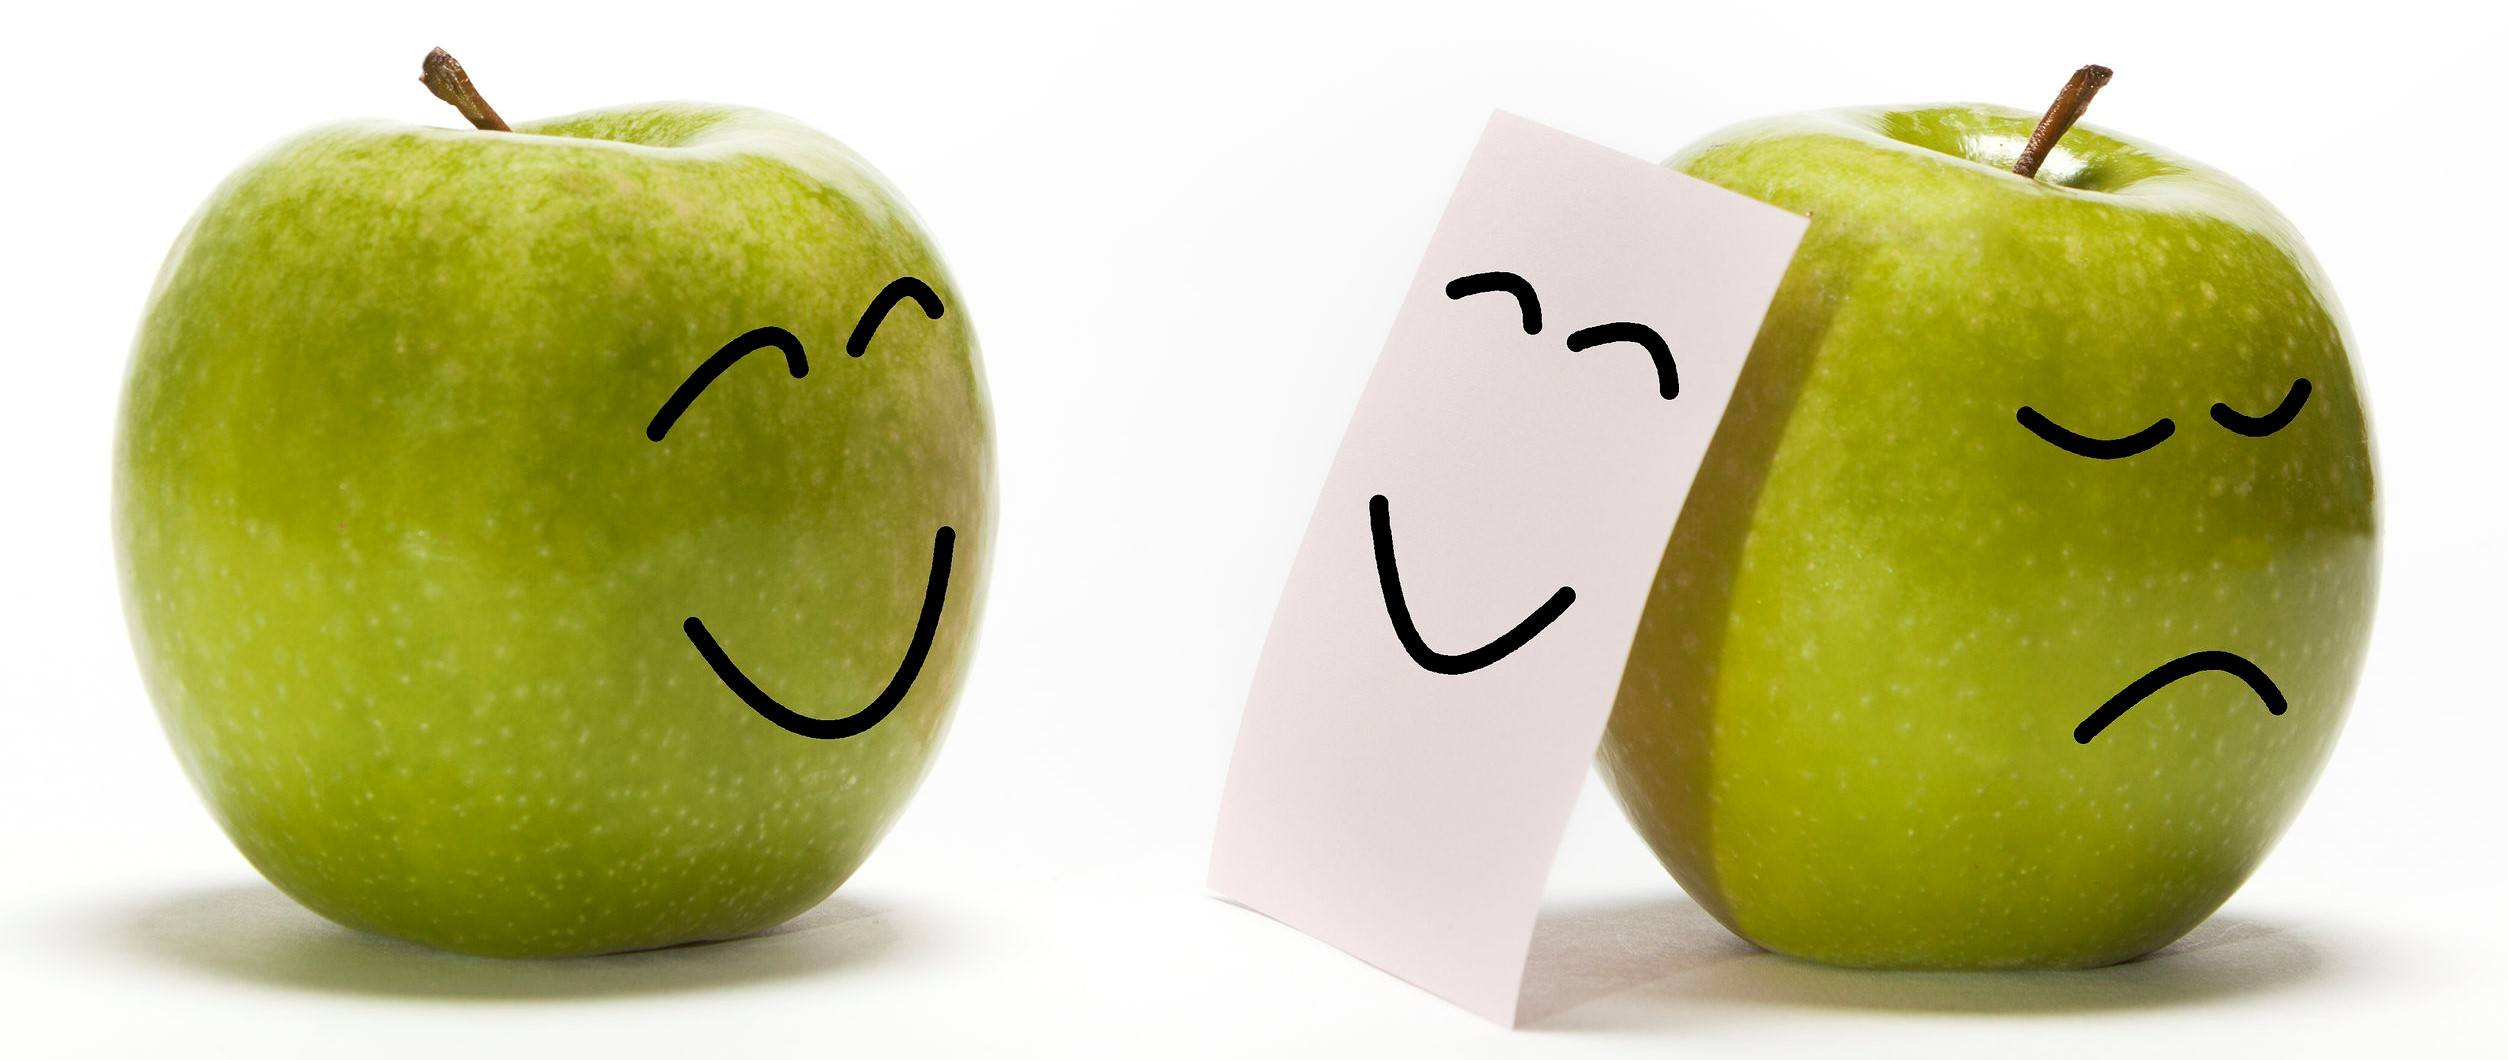 n apple smiling to other one that is concealing its sadness behind a smily mask